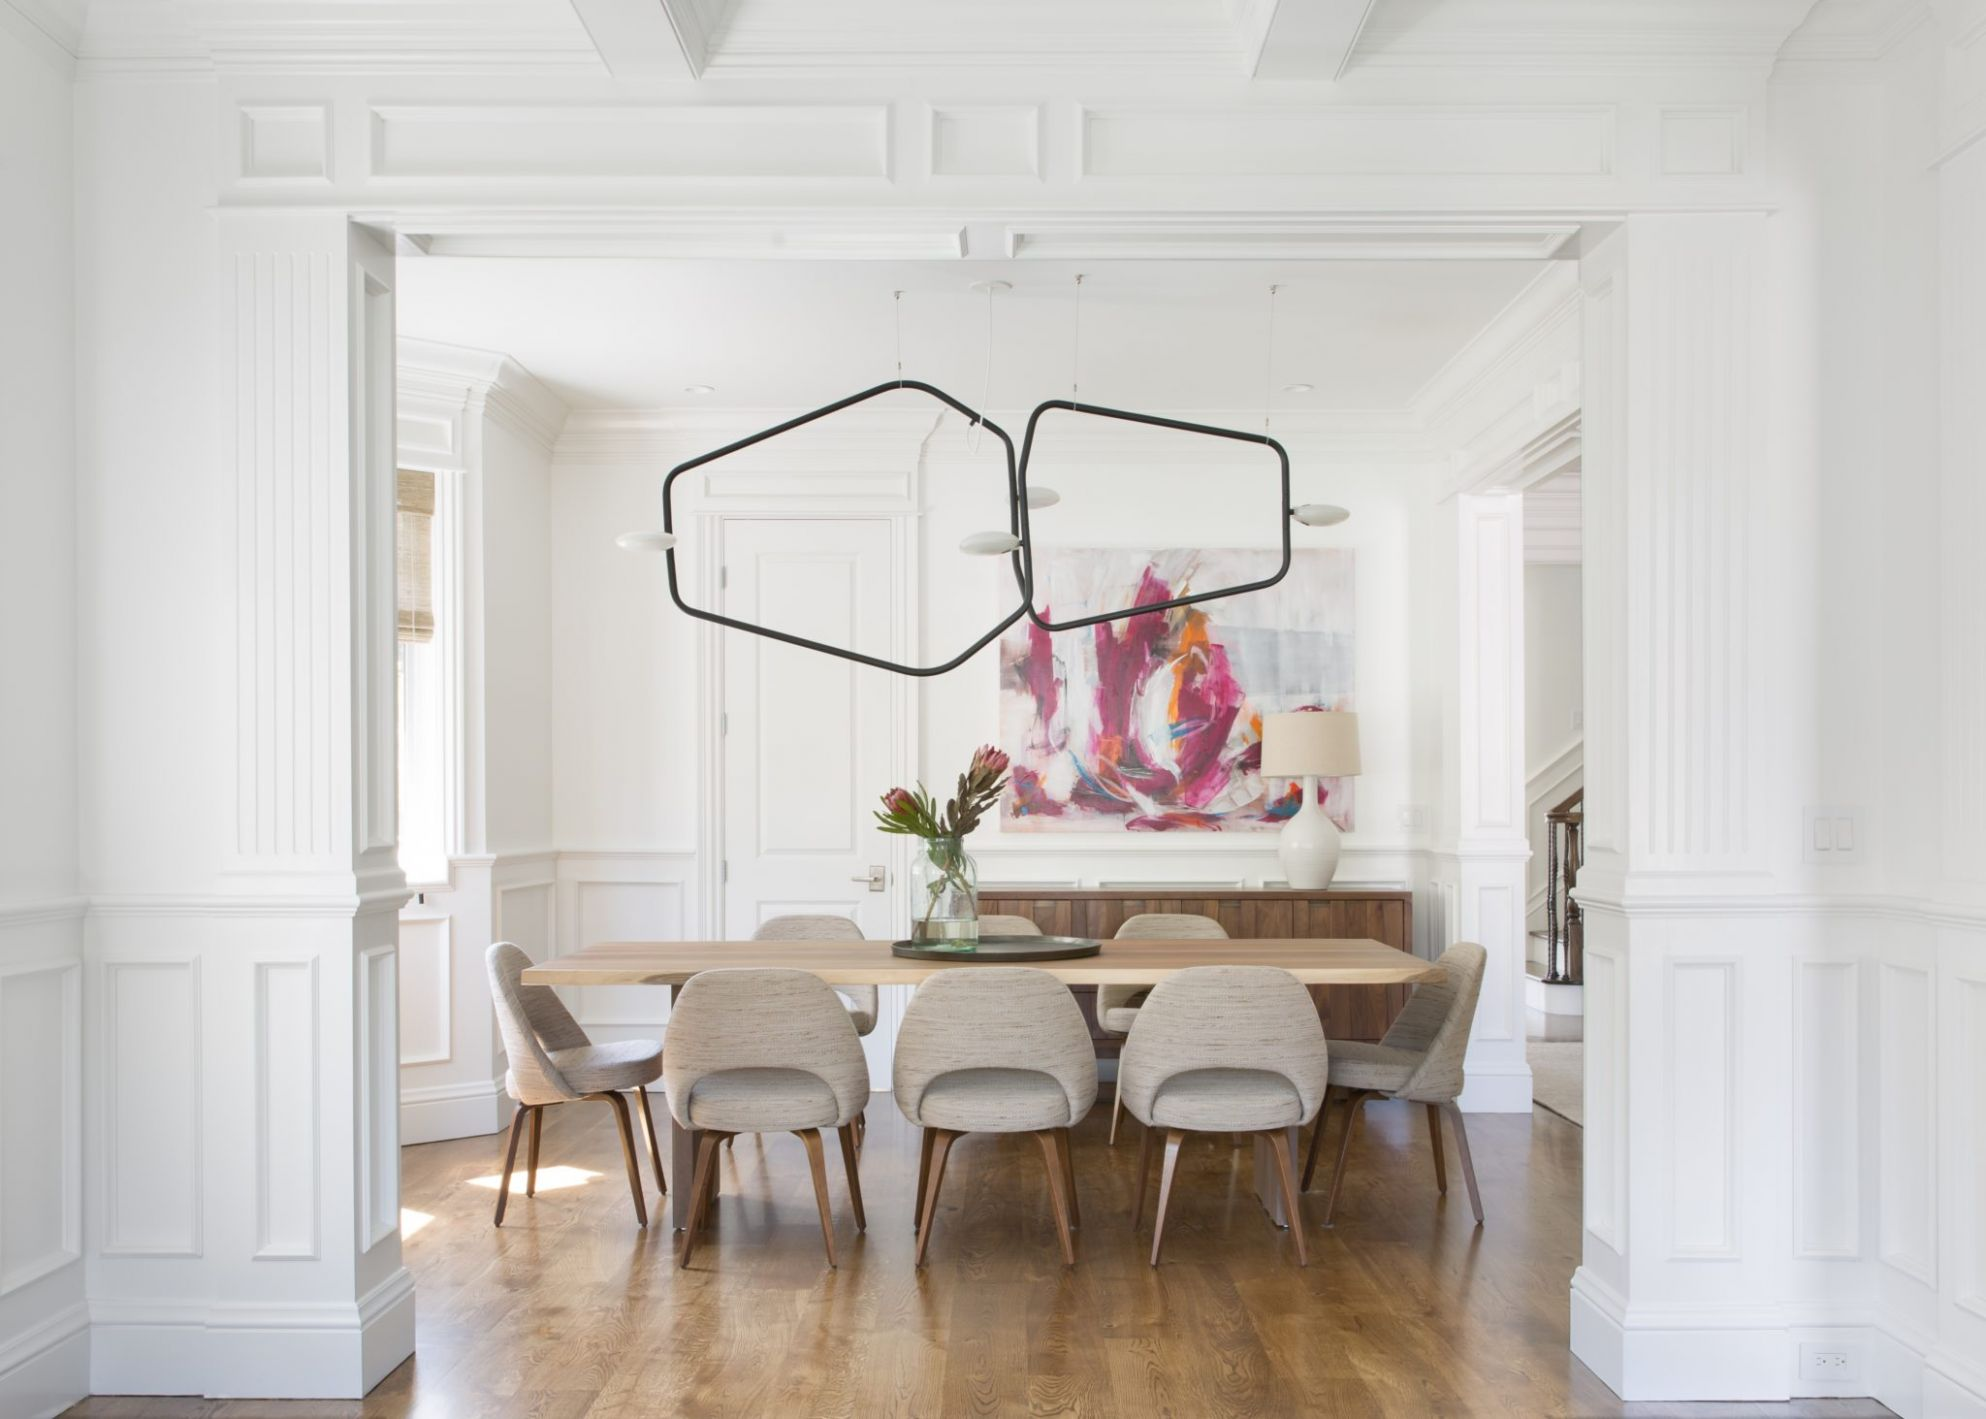 8 Dining Rooms with Wainscoting - Chairish Blog